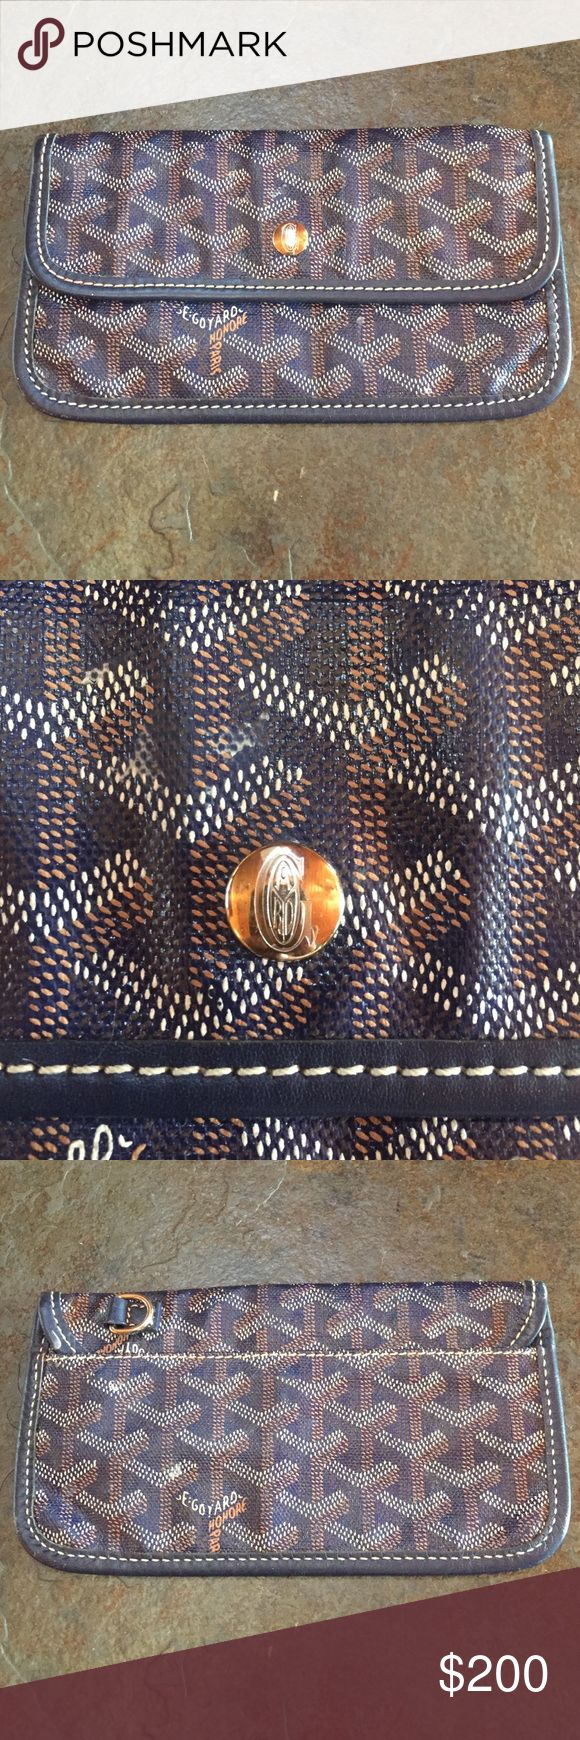 Goyard walletExcellent condition. Navy blue Bought Goyard tote off poshmark so poshmark confirmed authenticity. Love the tote but will never use the wallet. Excellent condition and super cute! Goyard Bags